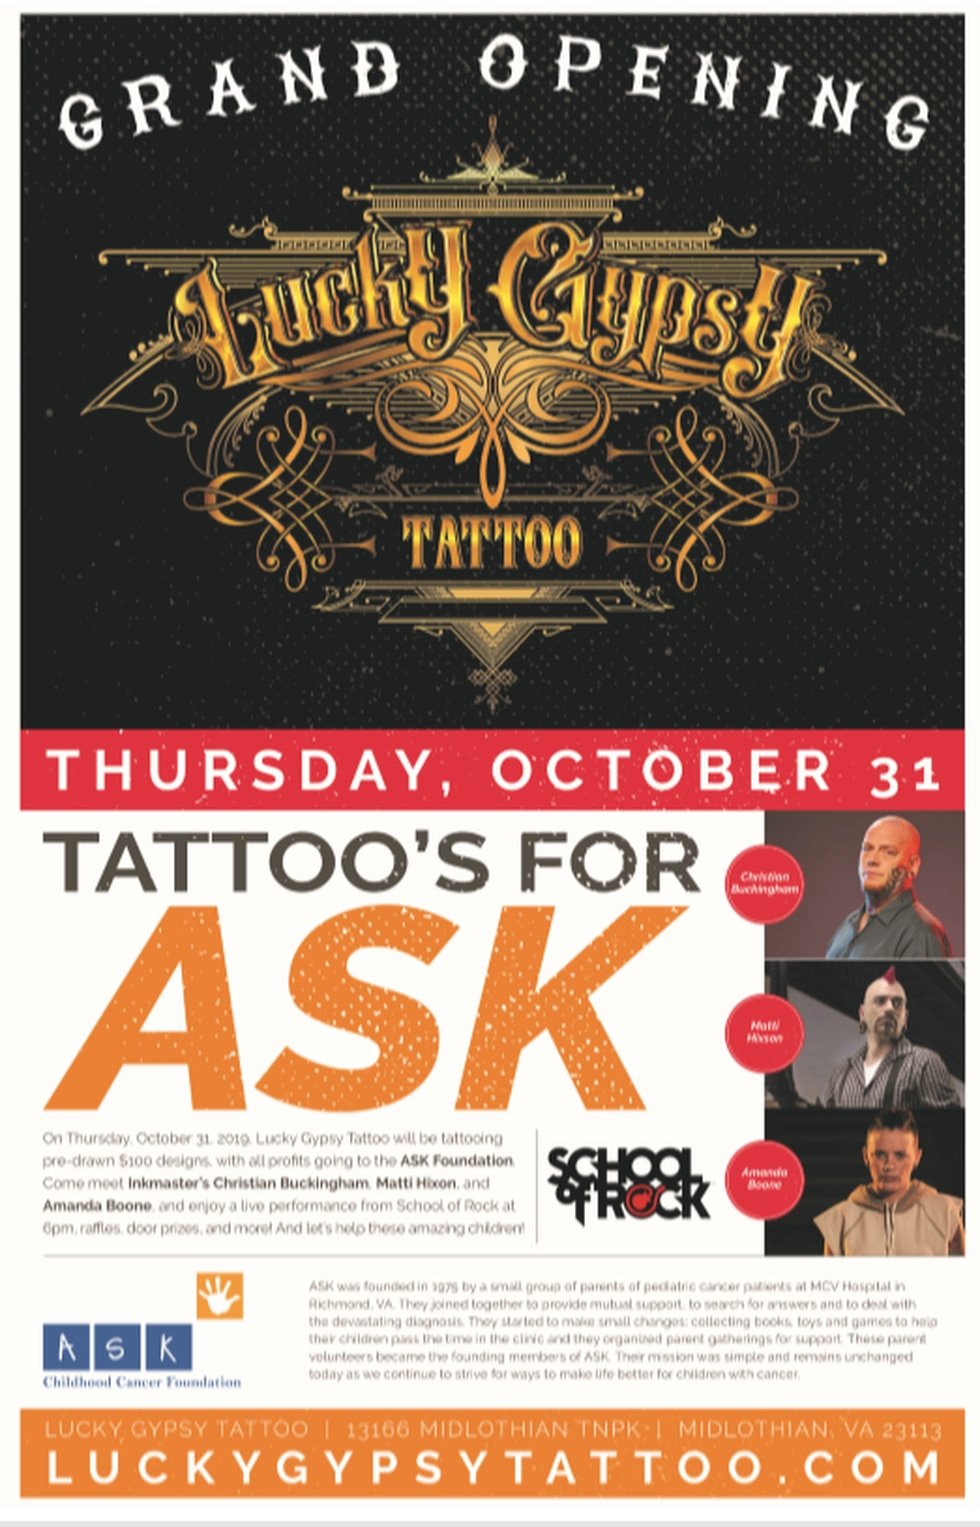 Lucky Gypsy grand opening flyer